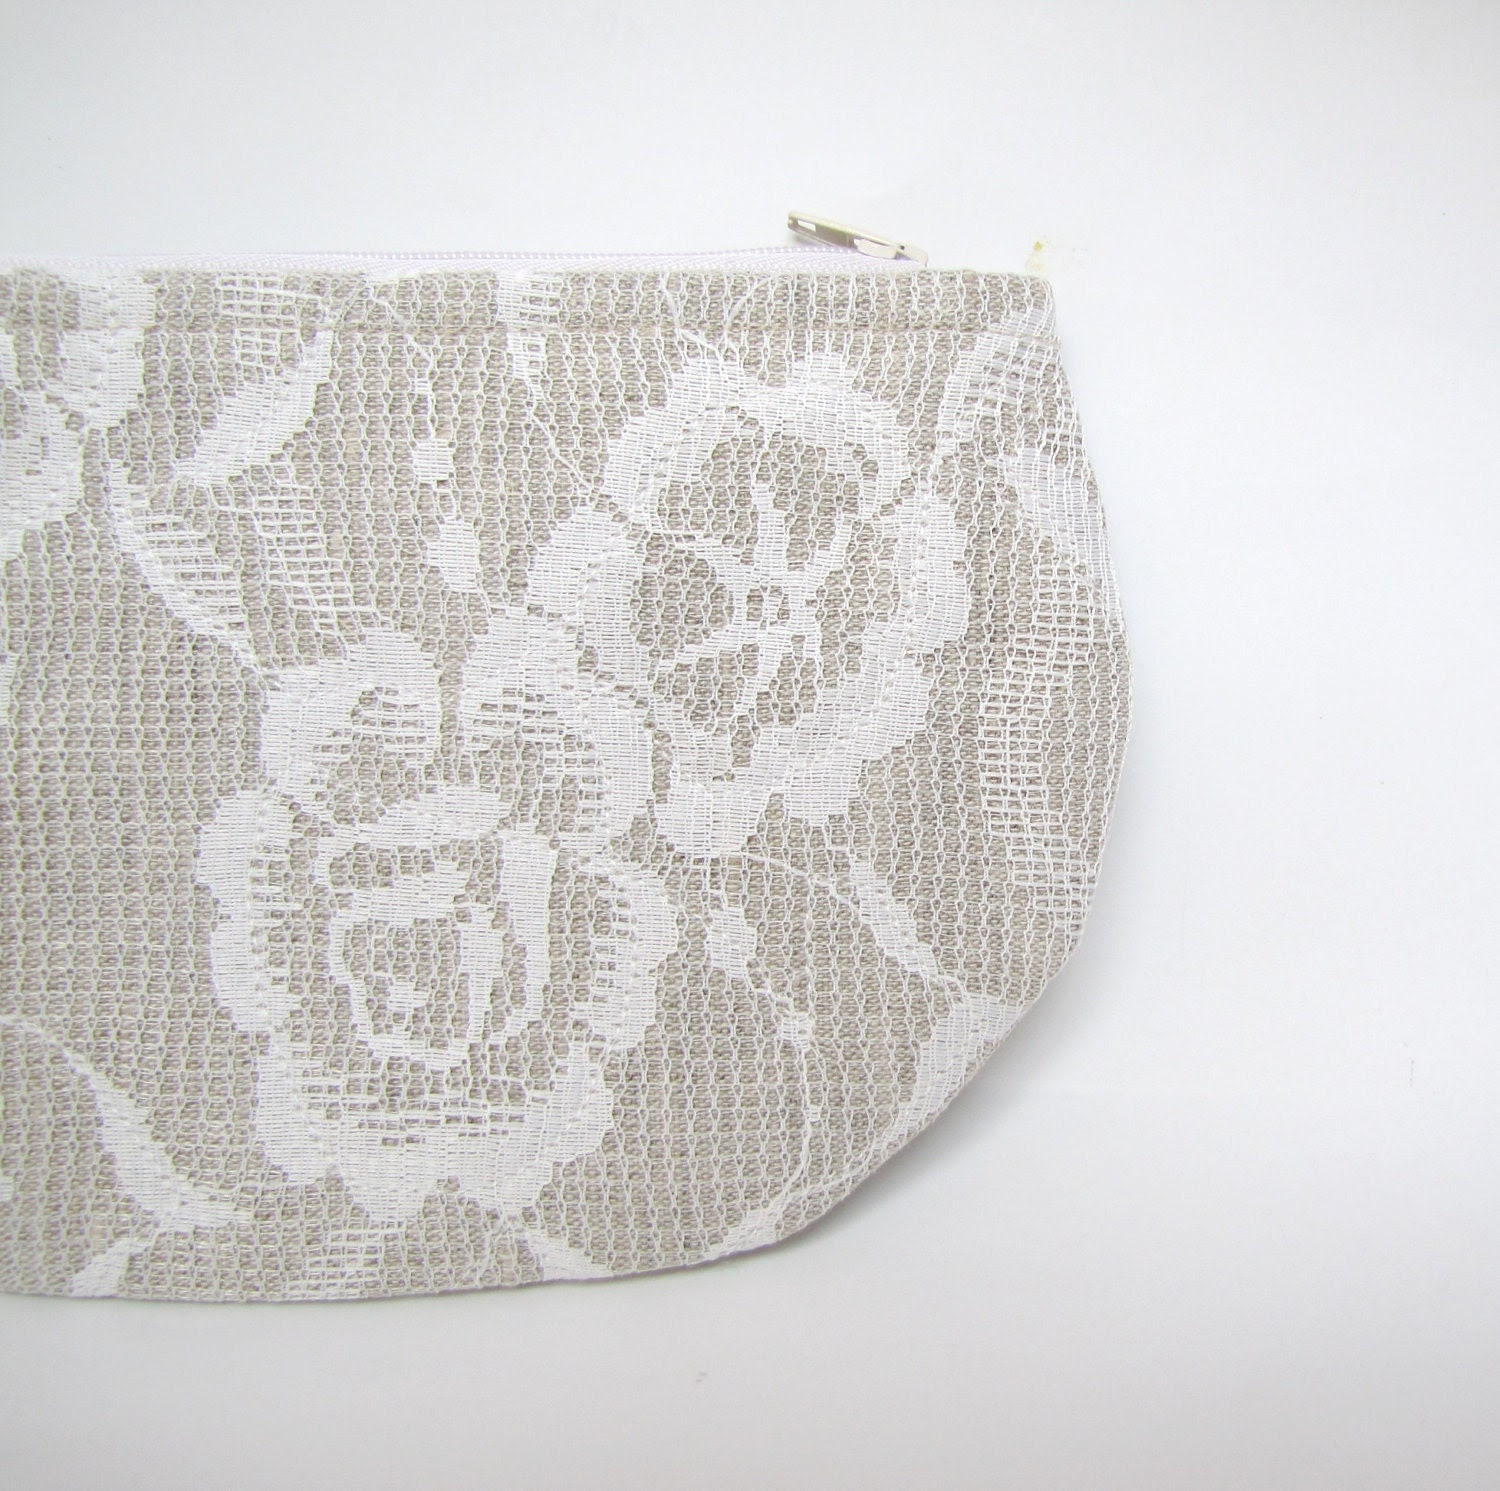 All laced up- zipper pouch, cosmetic bag, small clutch - natural linen covered with vintage lace